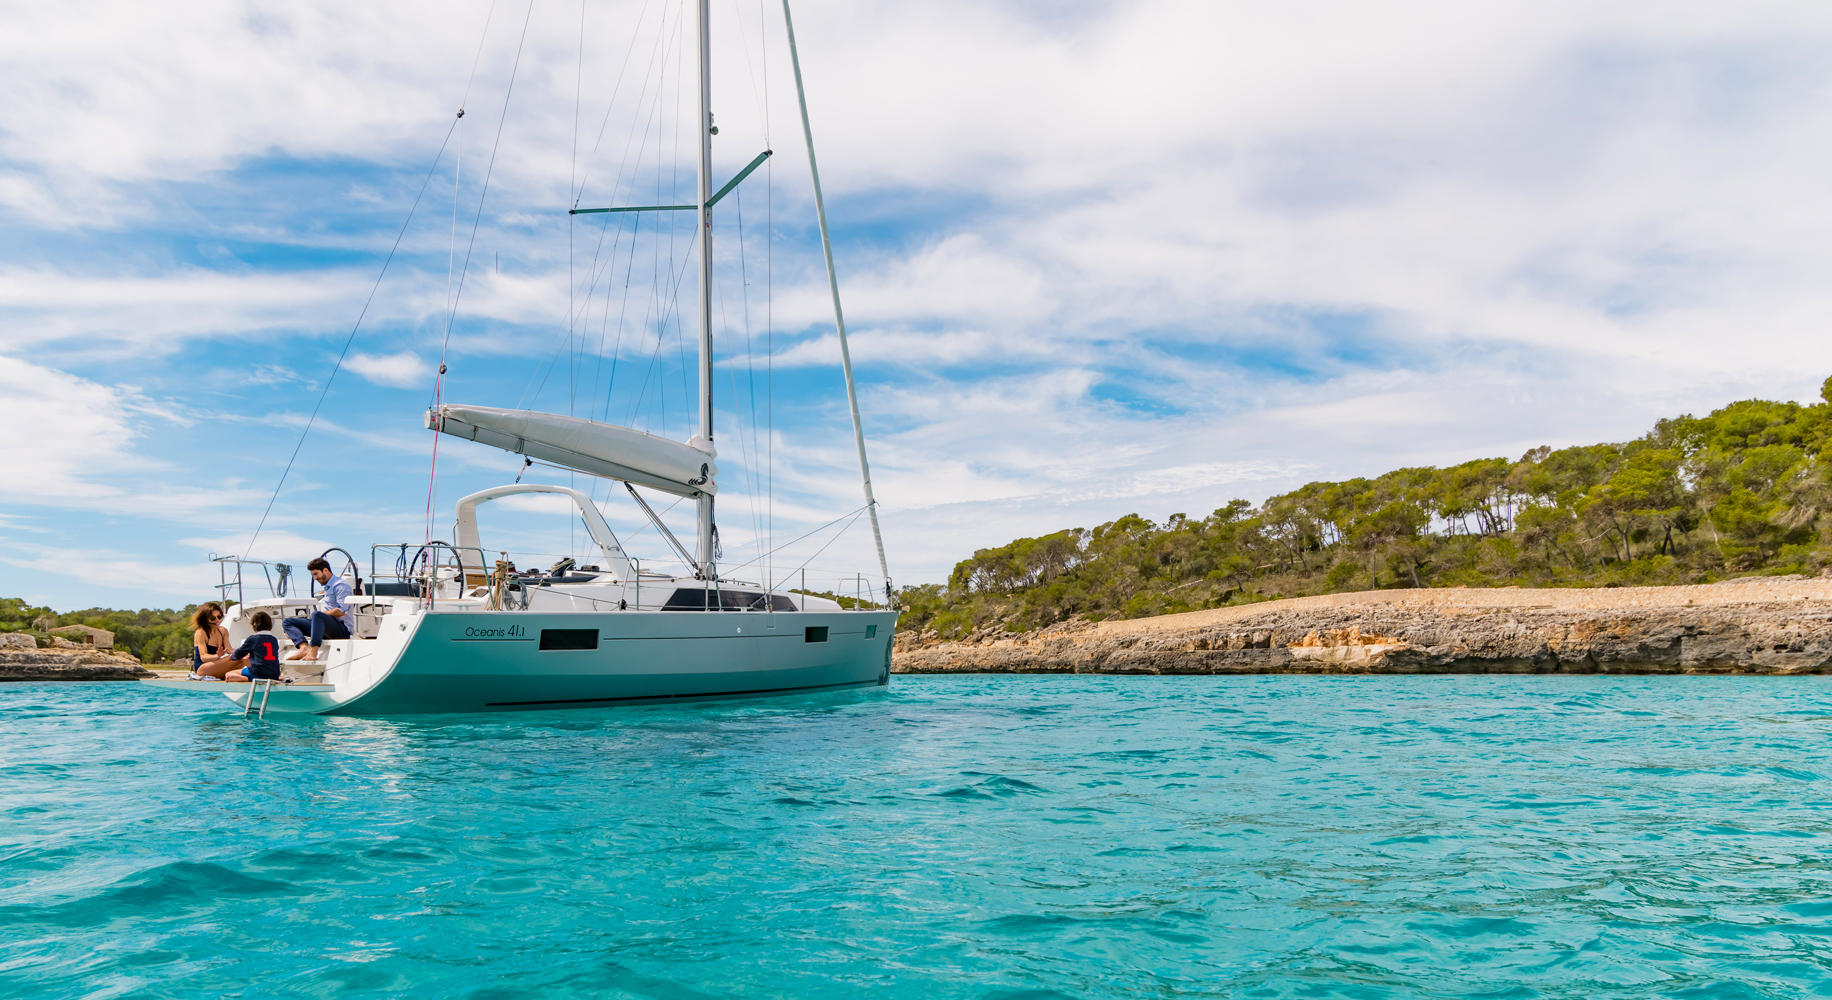 Oceanis 41 Class - Sailing Yacht for Charter in Greece